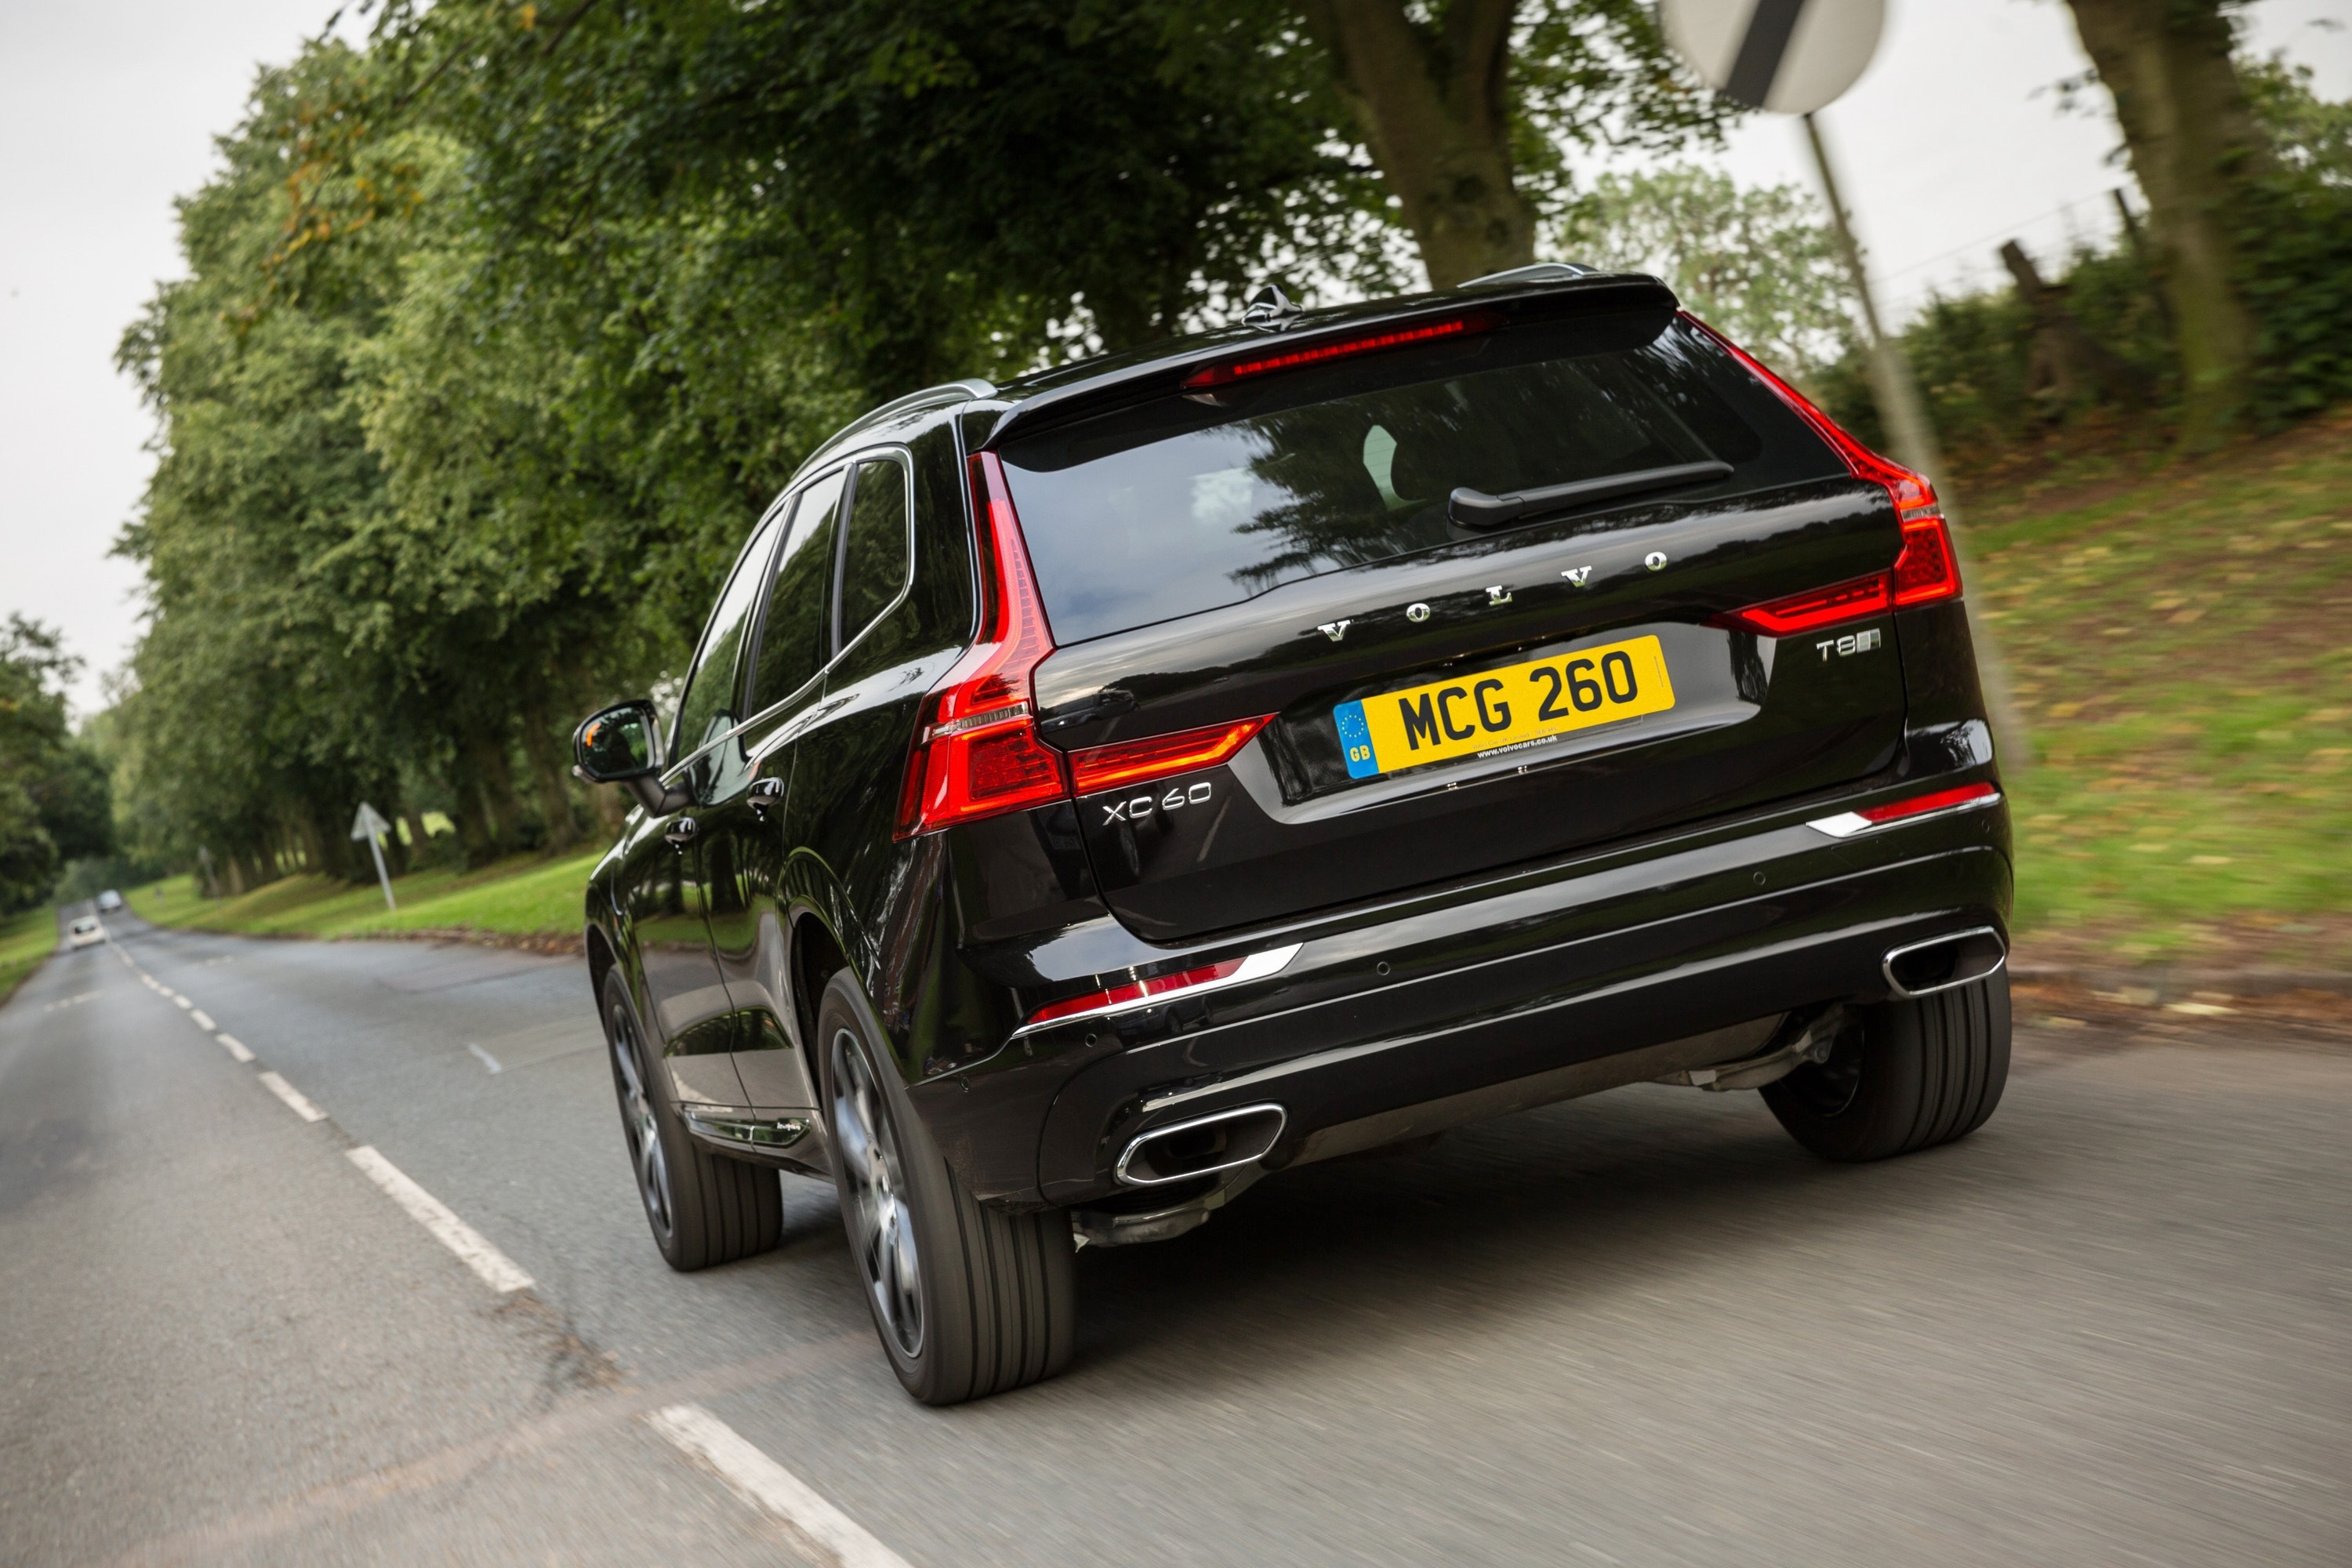 Rear view of a Black Volvo XC60 T8